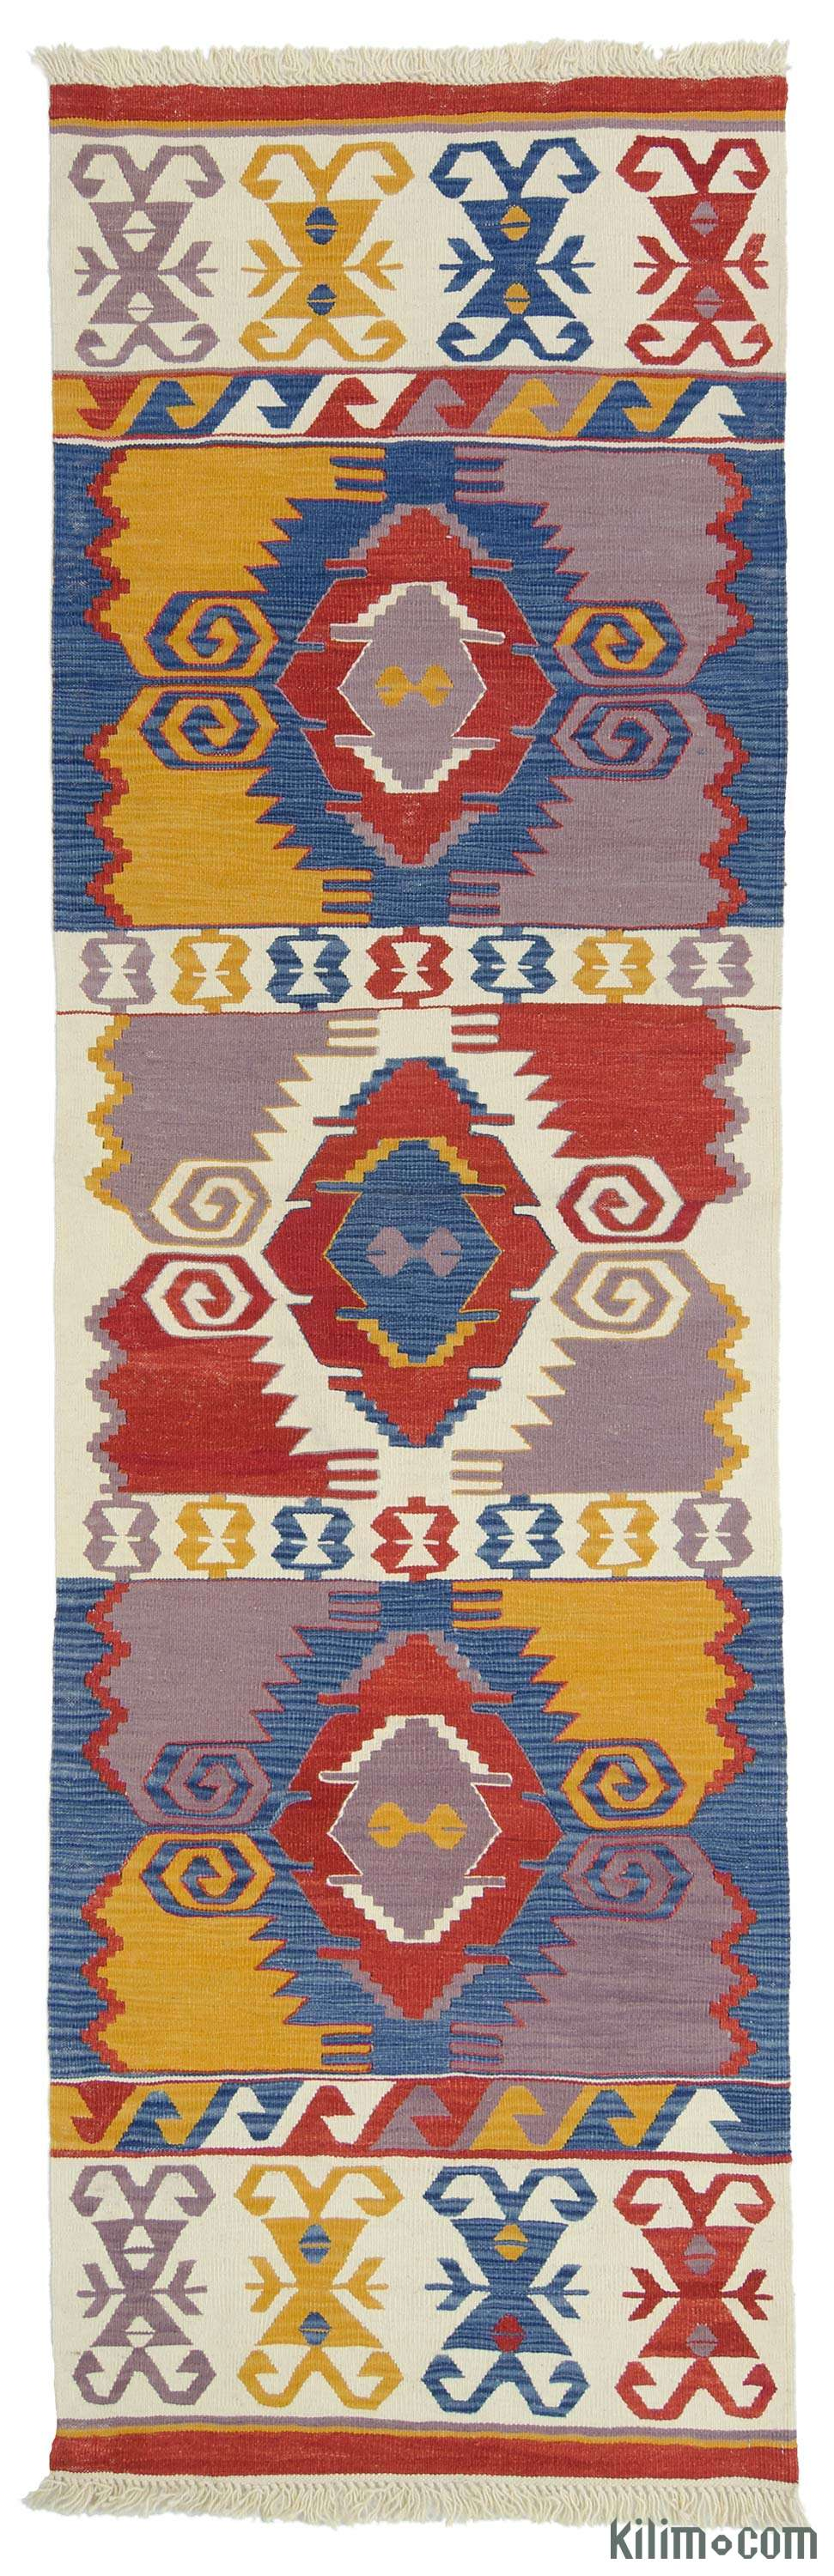 K0010804 new turkish kilim runner rug for Tappeti kilim ikea